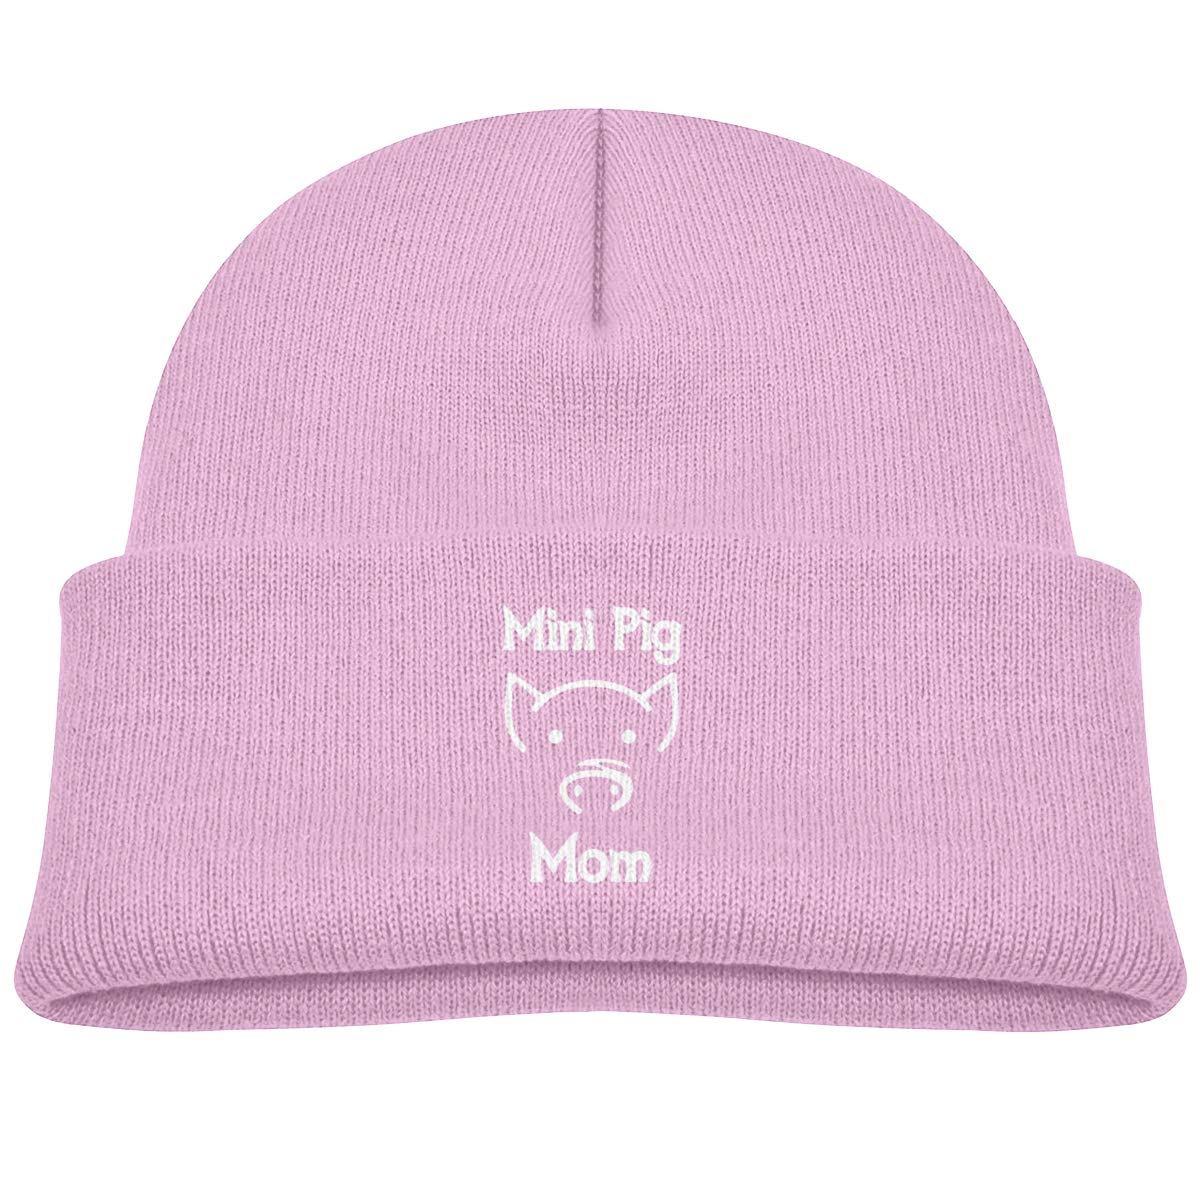 Mini Pig Mom Infant Skull Hats Kids Beanies Caps